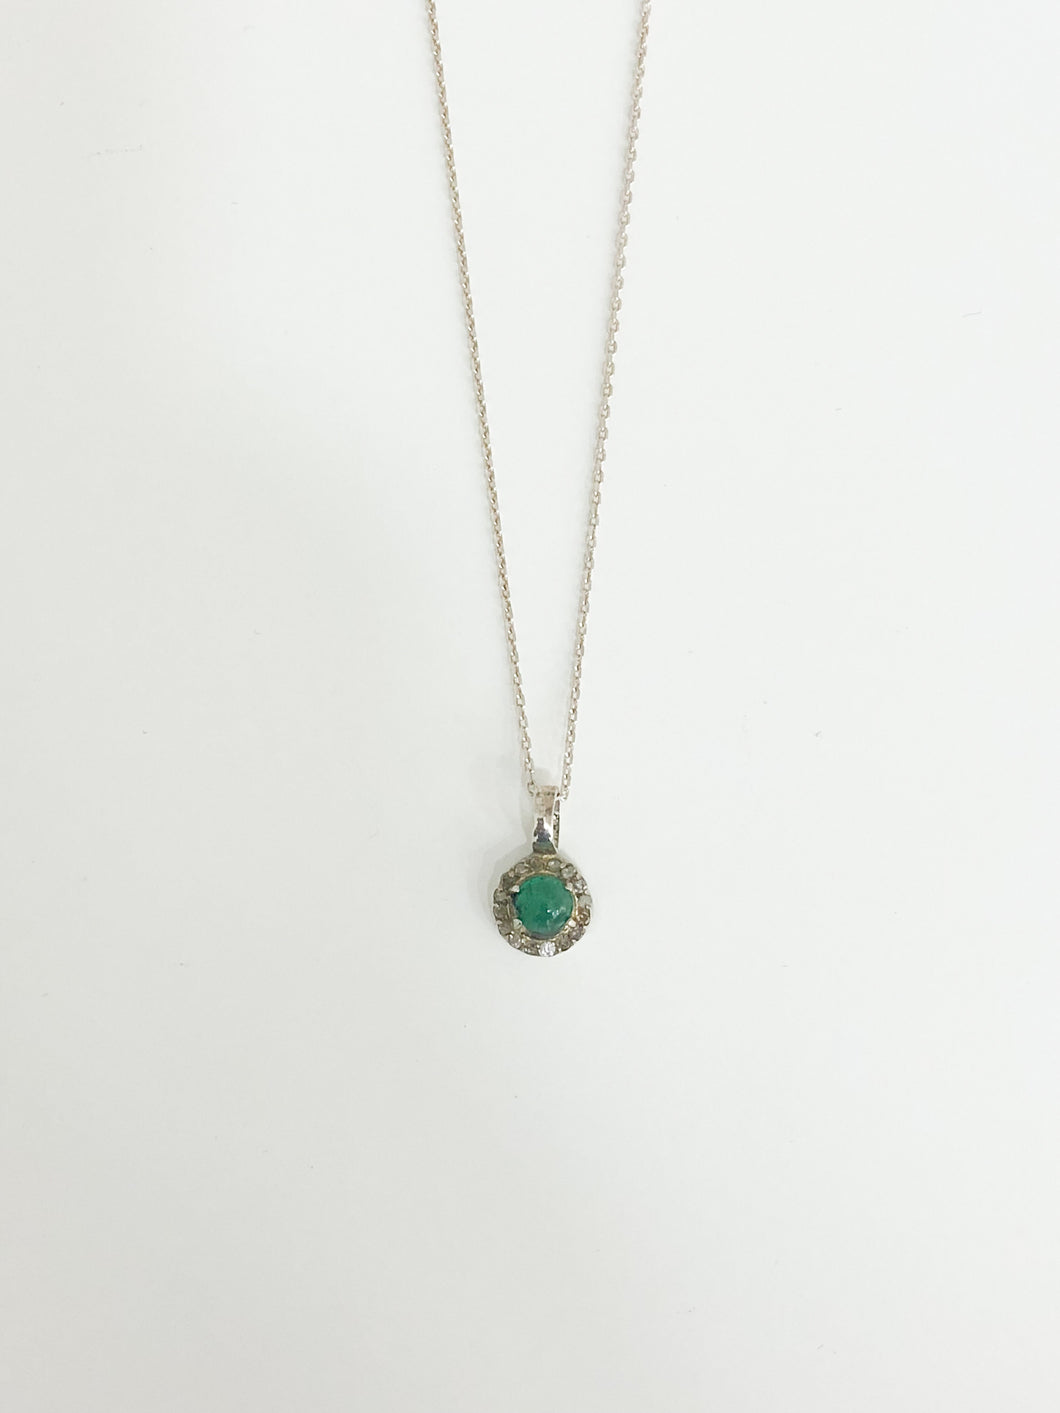 Emerald Diamond Necklace - Sufi Design